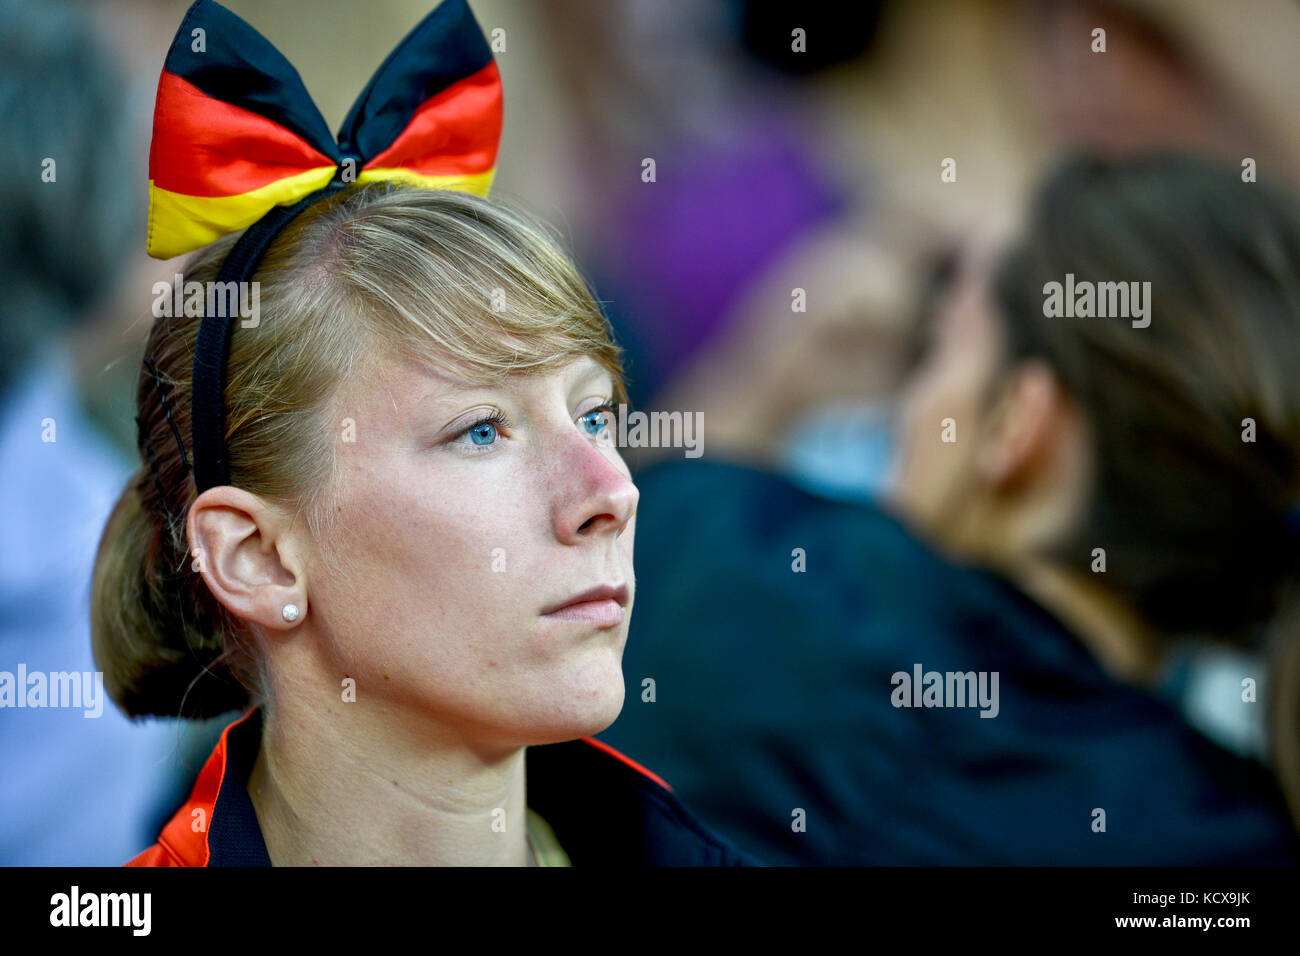 German woman wearing a bow with the German flag - Stock Image